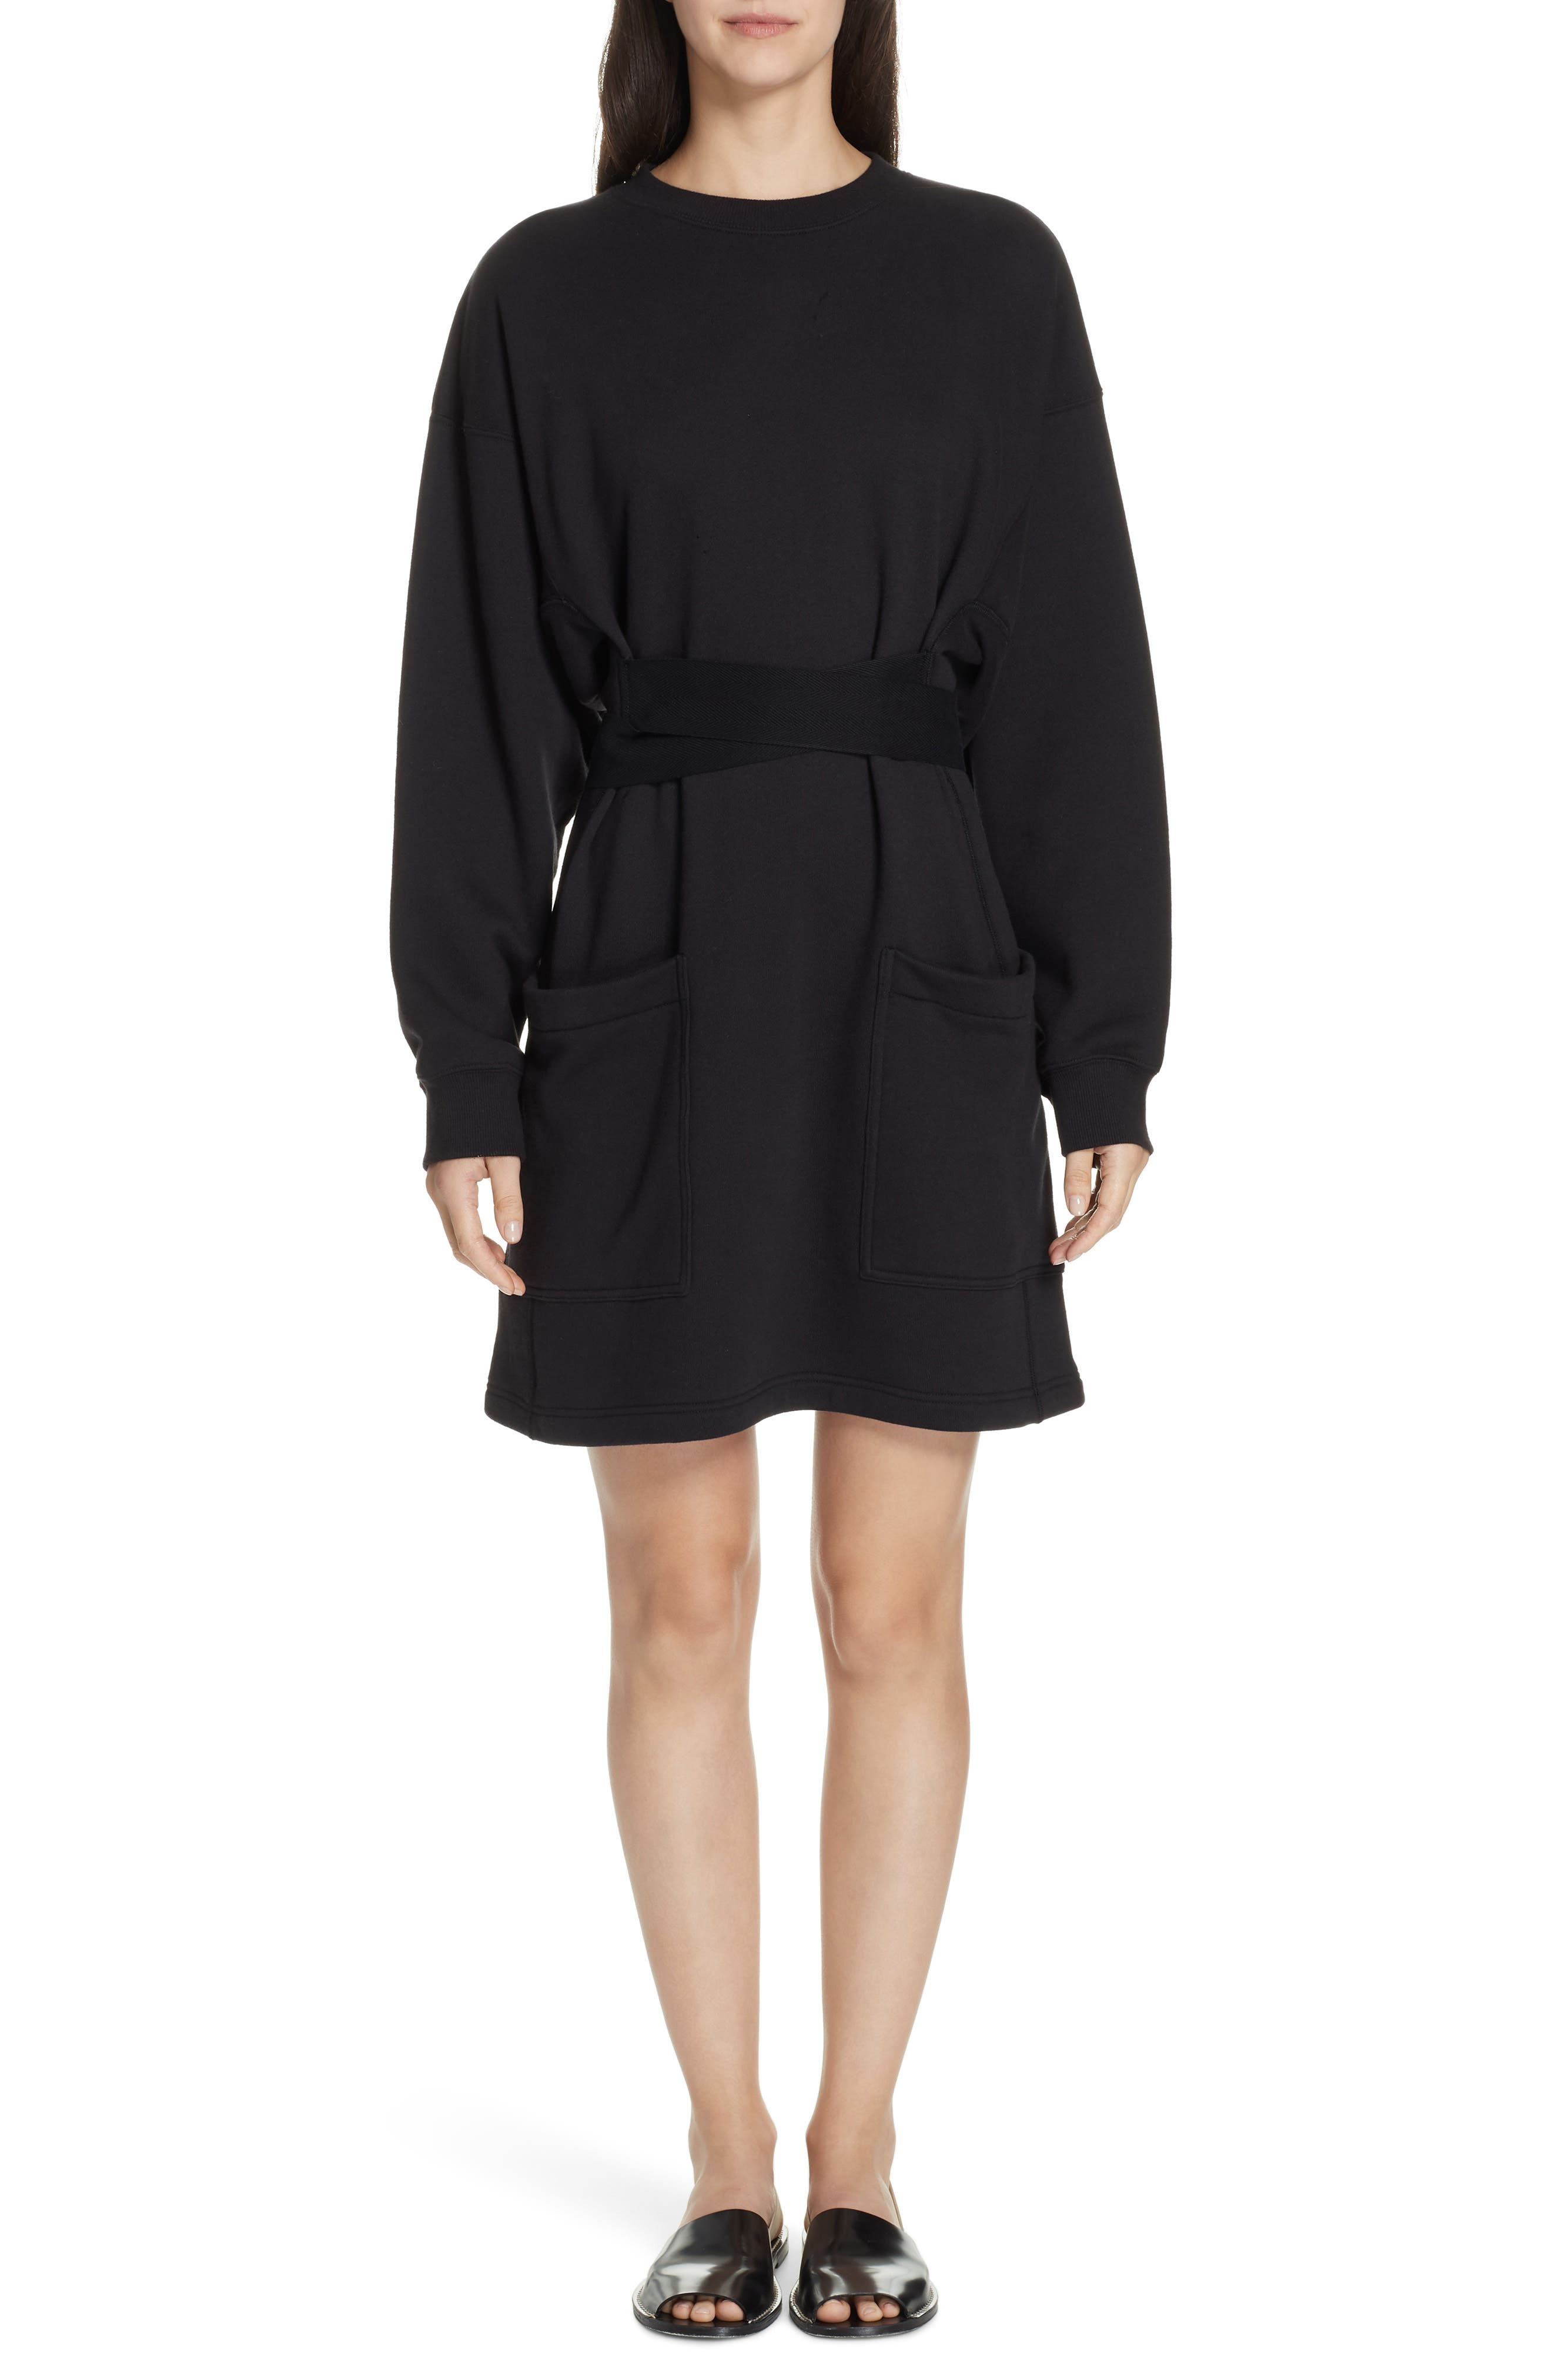 PROENZA SCHOULER, PSWL Belted Sweatshirt Dress, Main thumbnail 1, color, BLACK